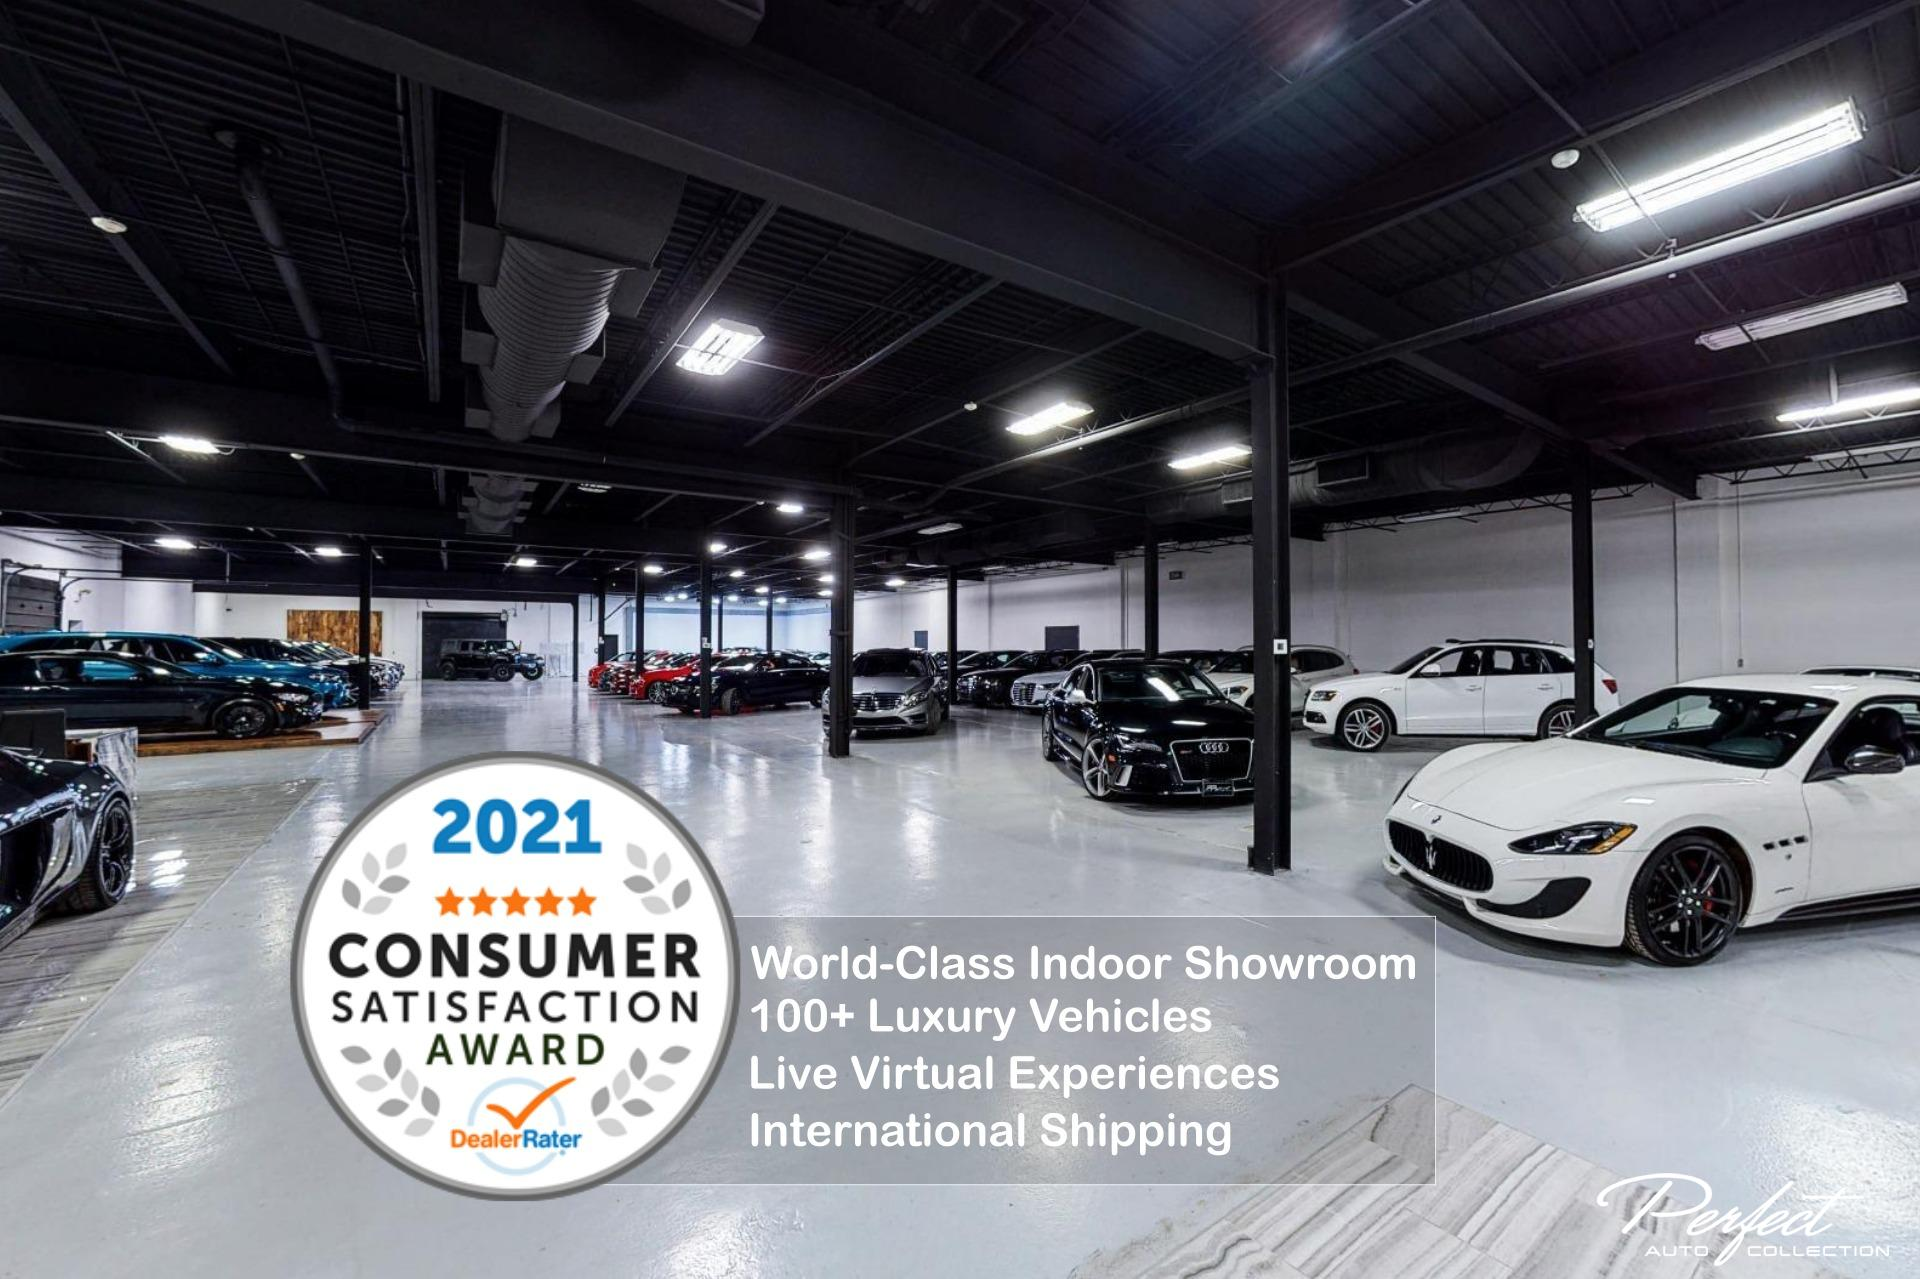 Used 2015 Mercedes-Benz S-Class S 65 AMG for sale $84,995 at Perfect Auto Collection in Akron OH 44310 3